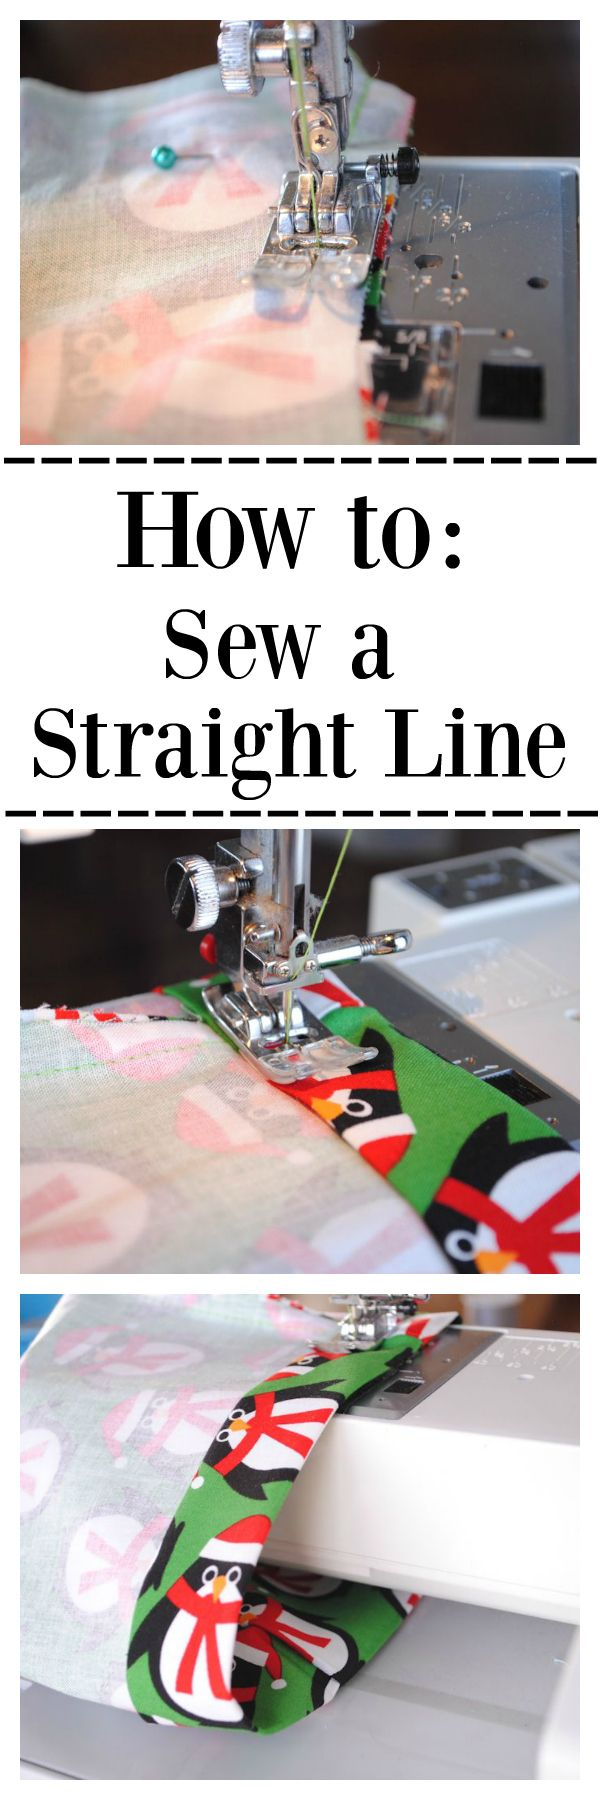 How to Sew a Straight Line: Sewing Classes Lesson #1